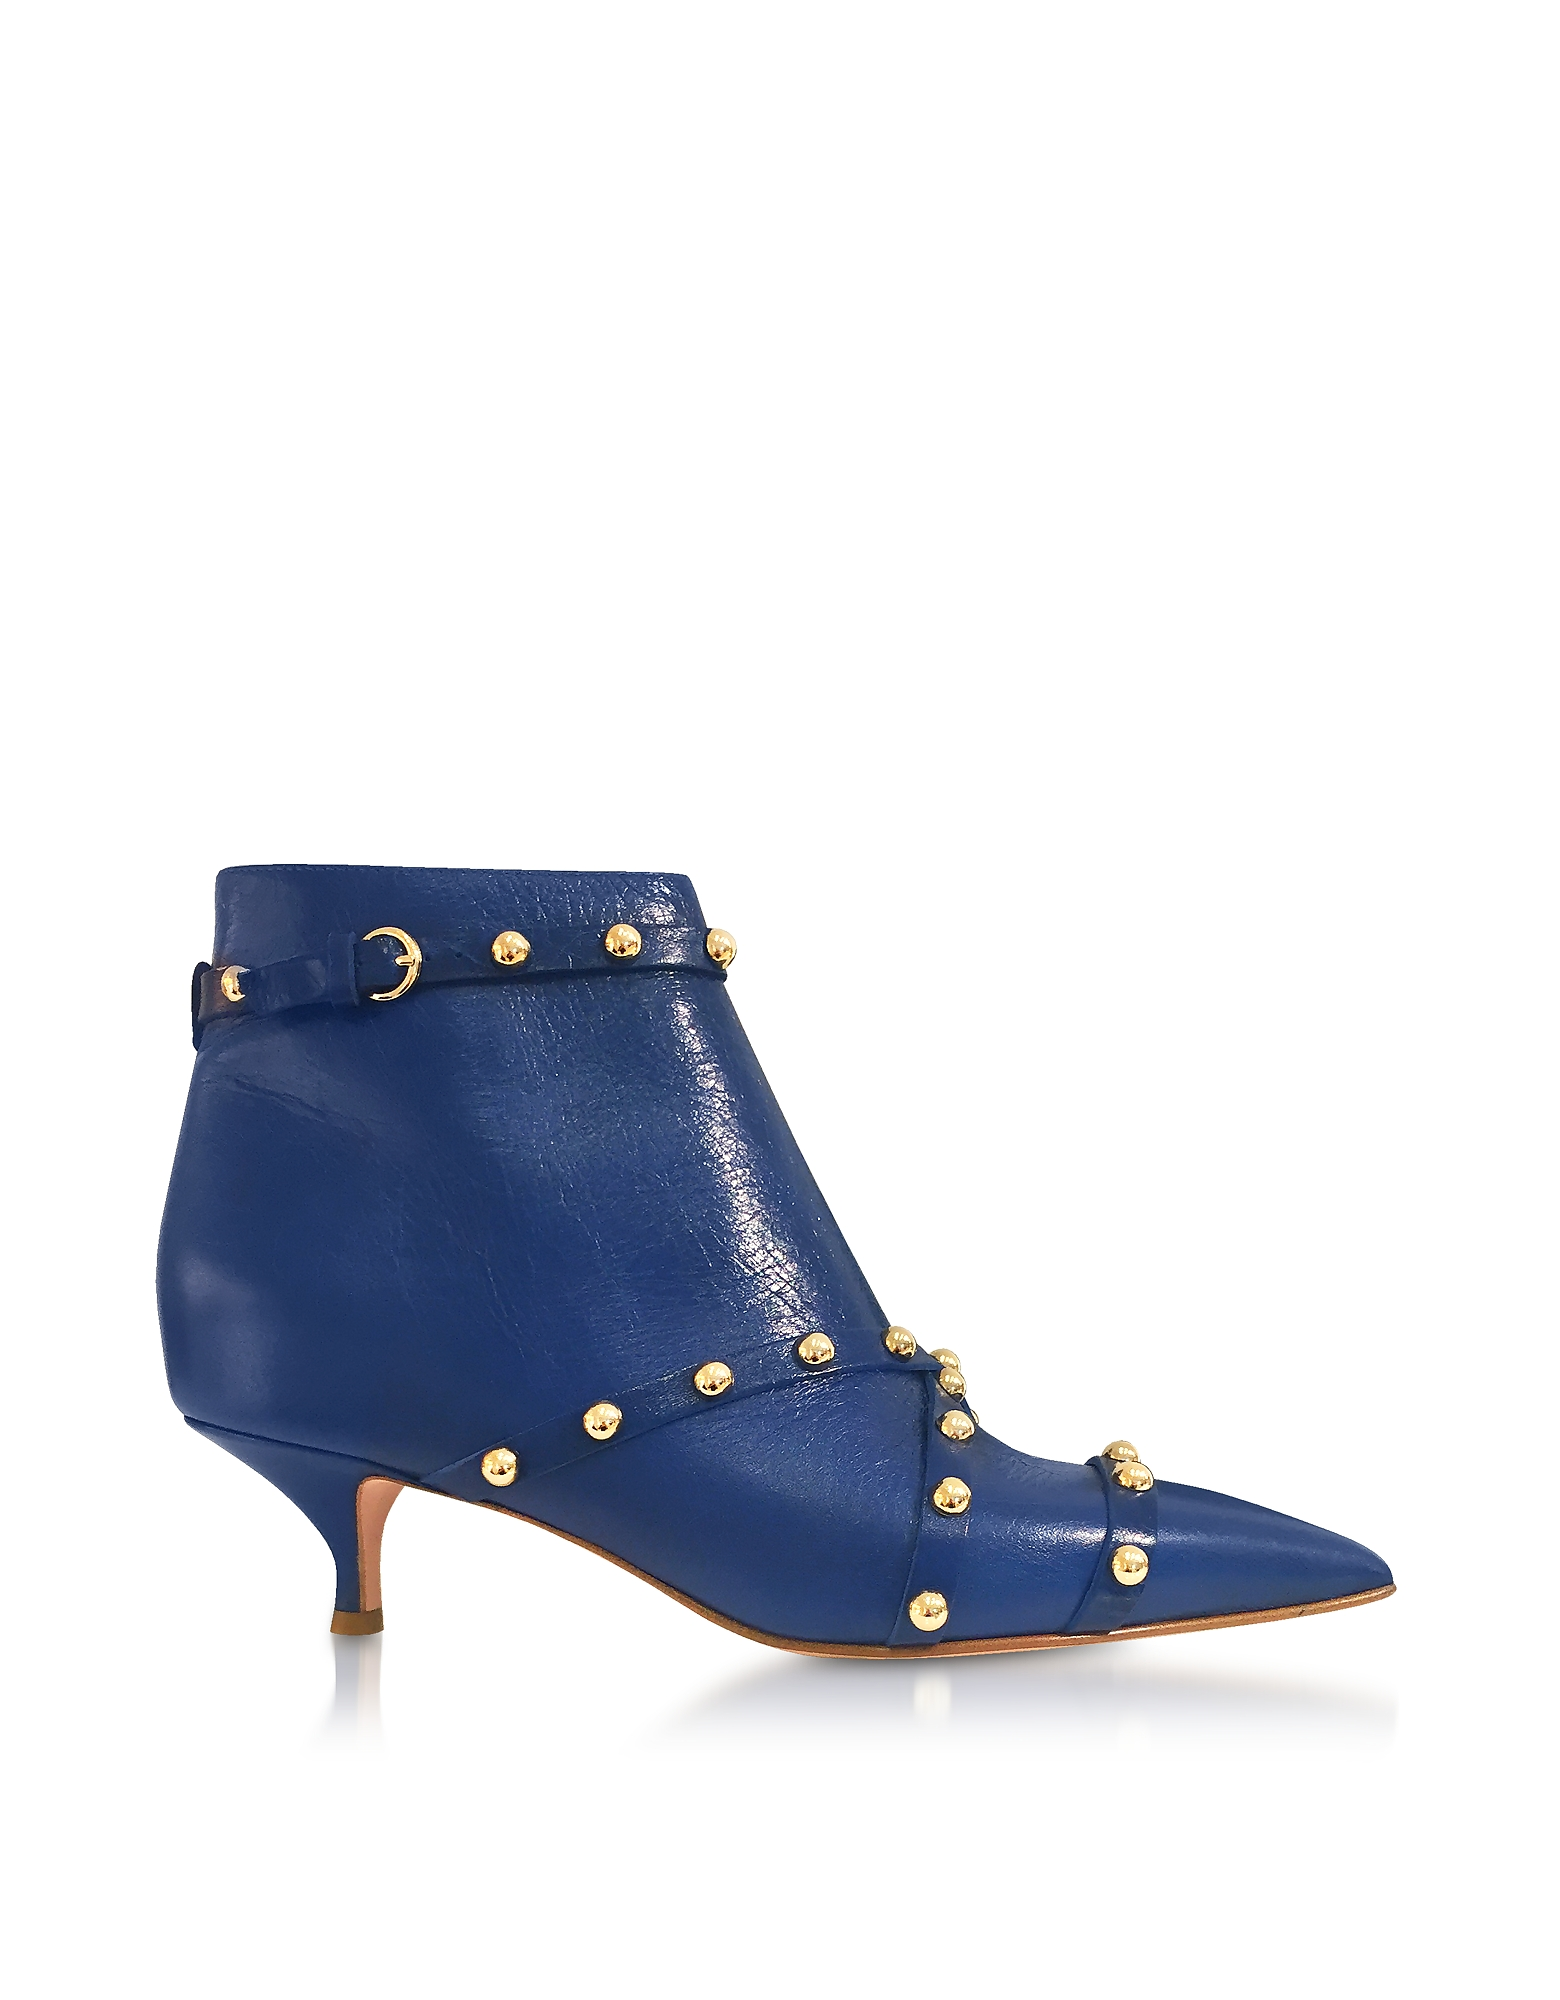 RED Valentino Shoes, Persian Blue Studded Leather Shuffle Booties